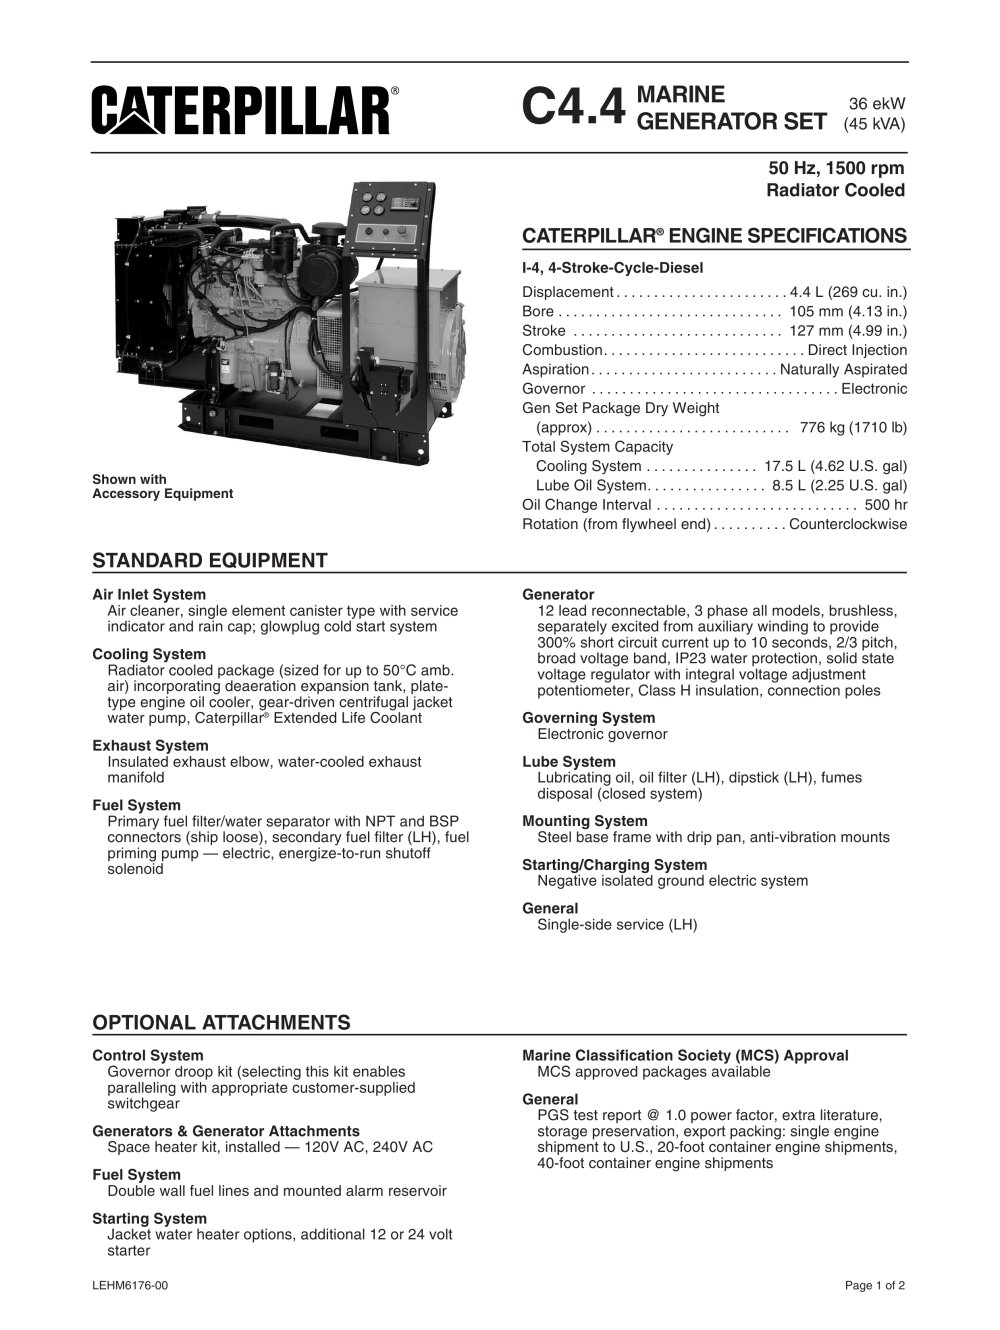 cat c4 4 radiator cooled spec sheets 52919_1b cat c4 4 radiator cooled spec sheets caterpillar marine power RJ45 Wiring-Diagram at fashall.co